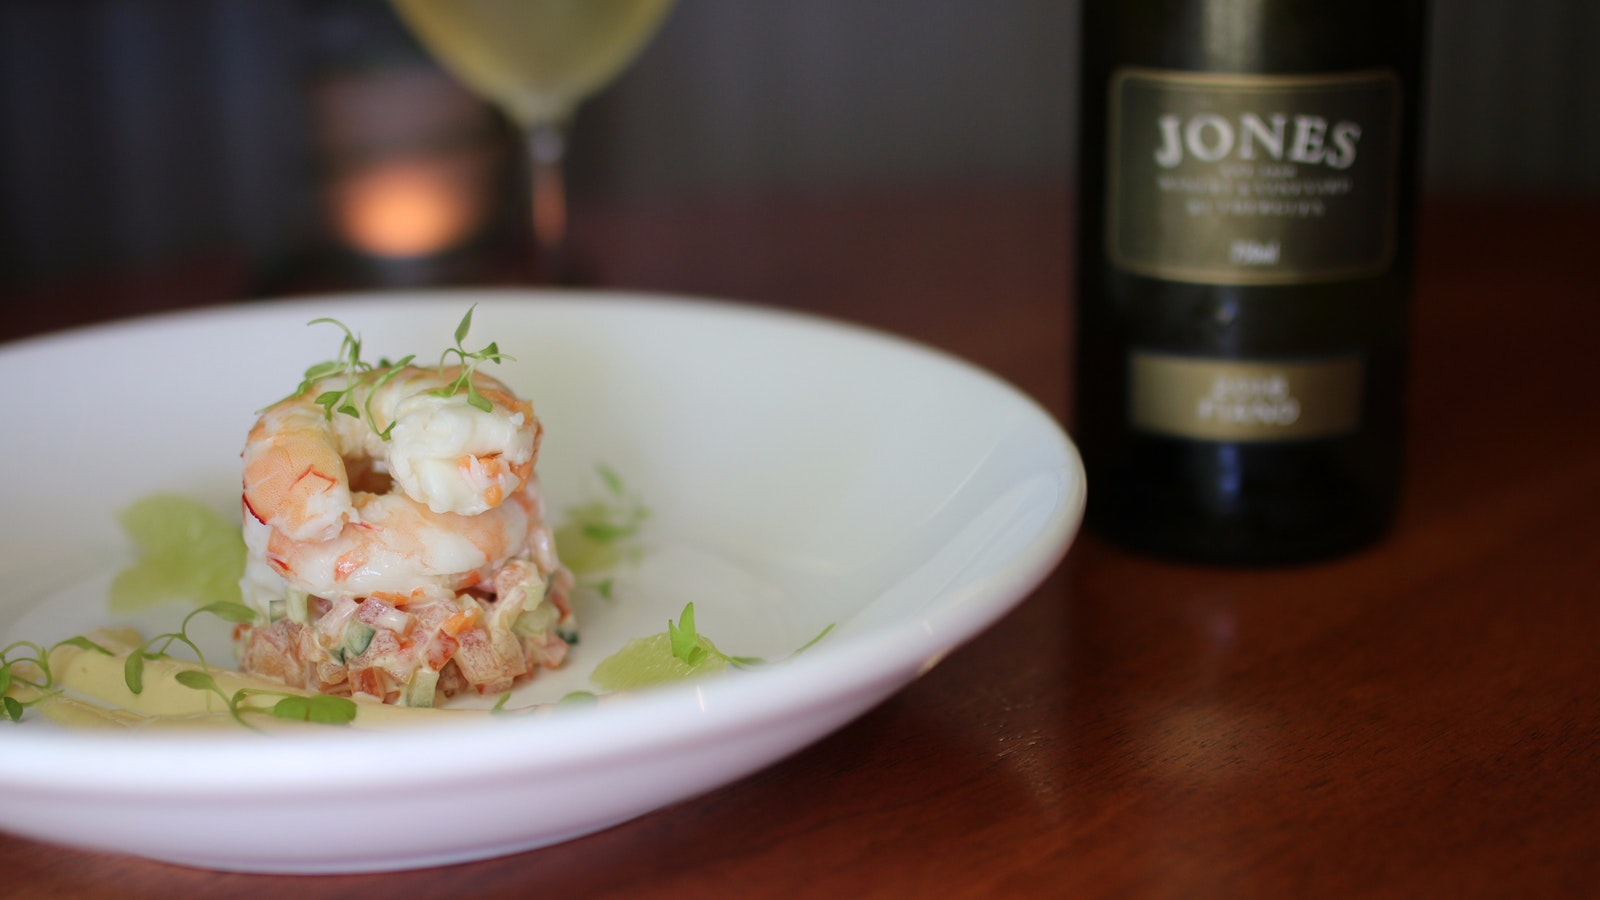 Prawn mousseline & Jones Fiano